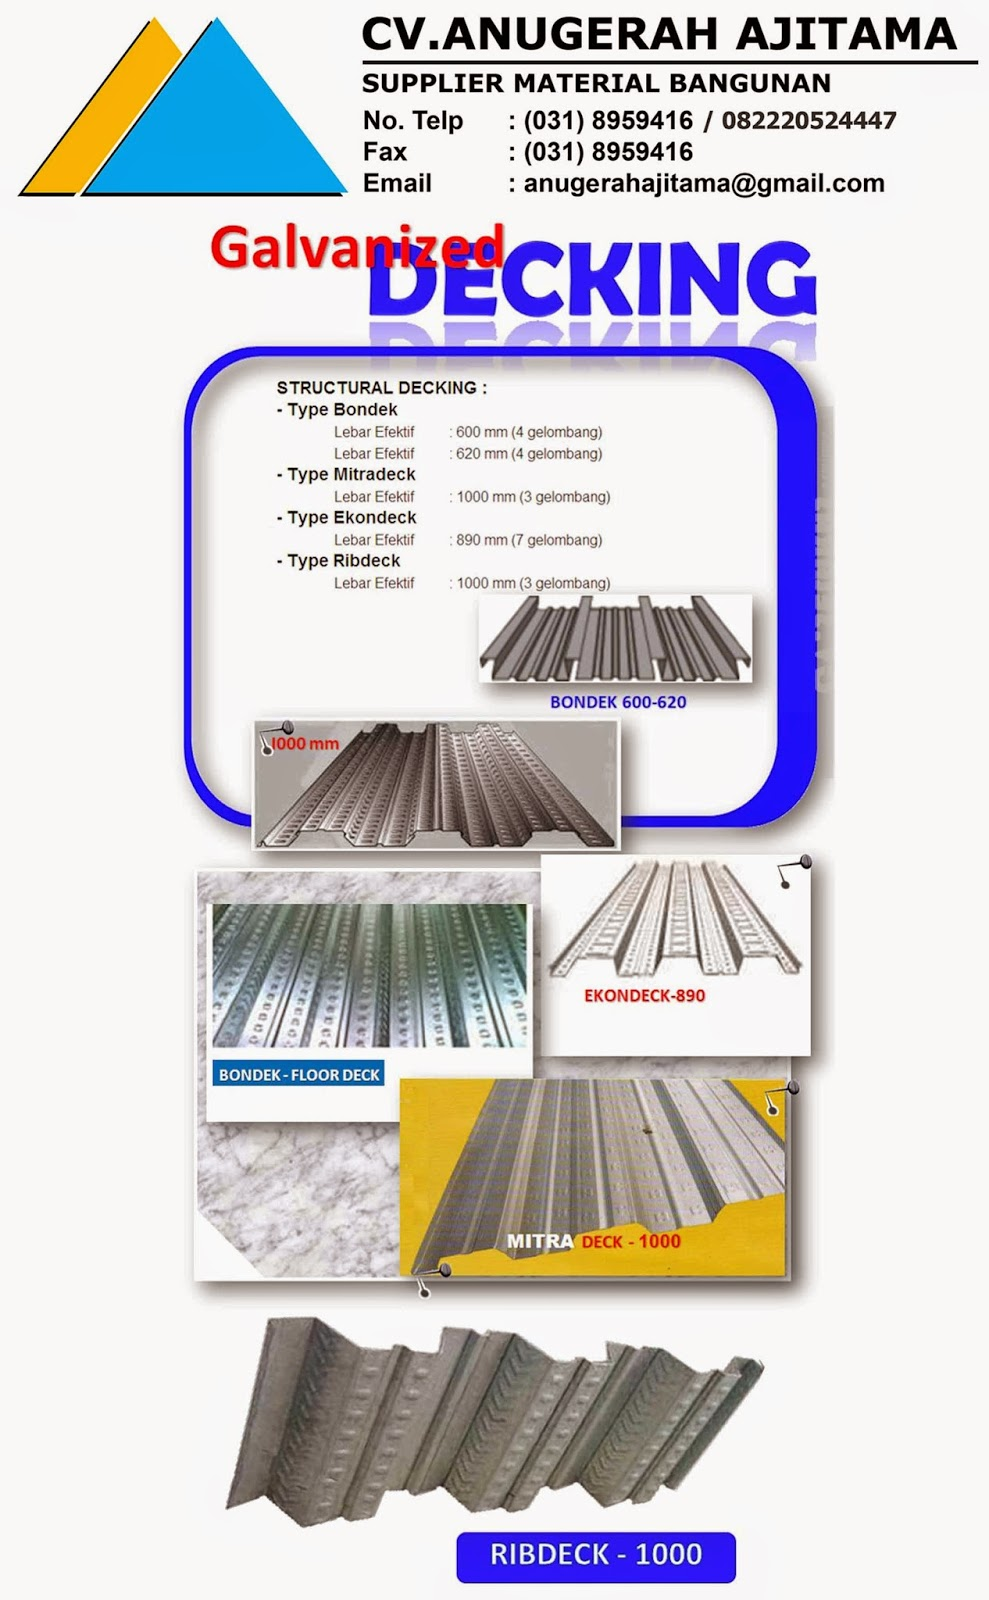 PRODUK DECKING BONDEK STRUCTURAL DECKING